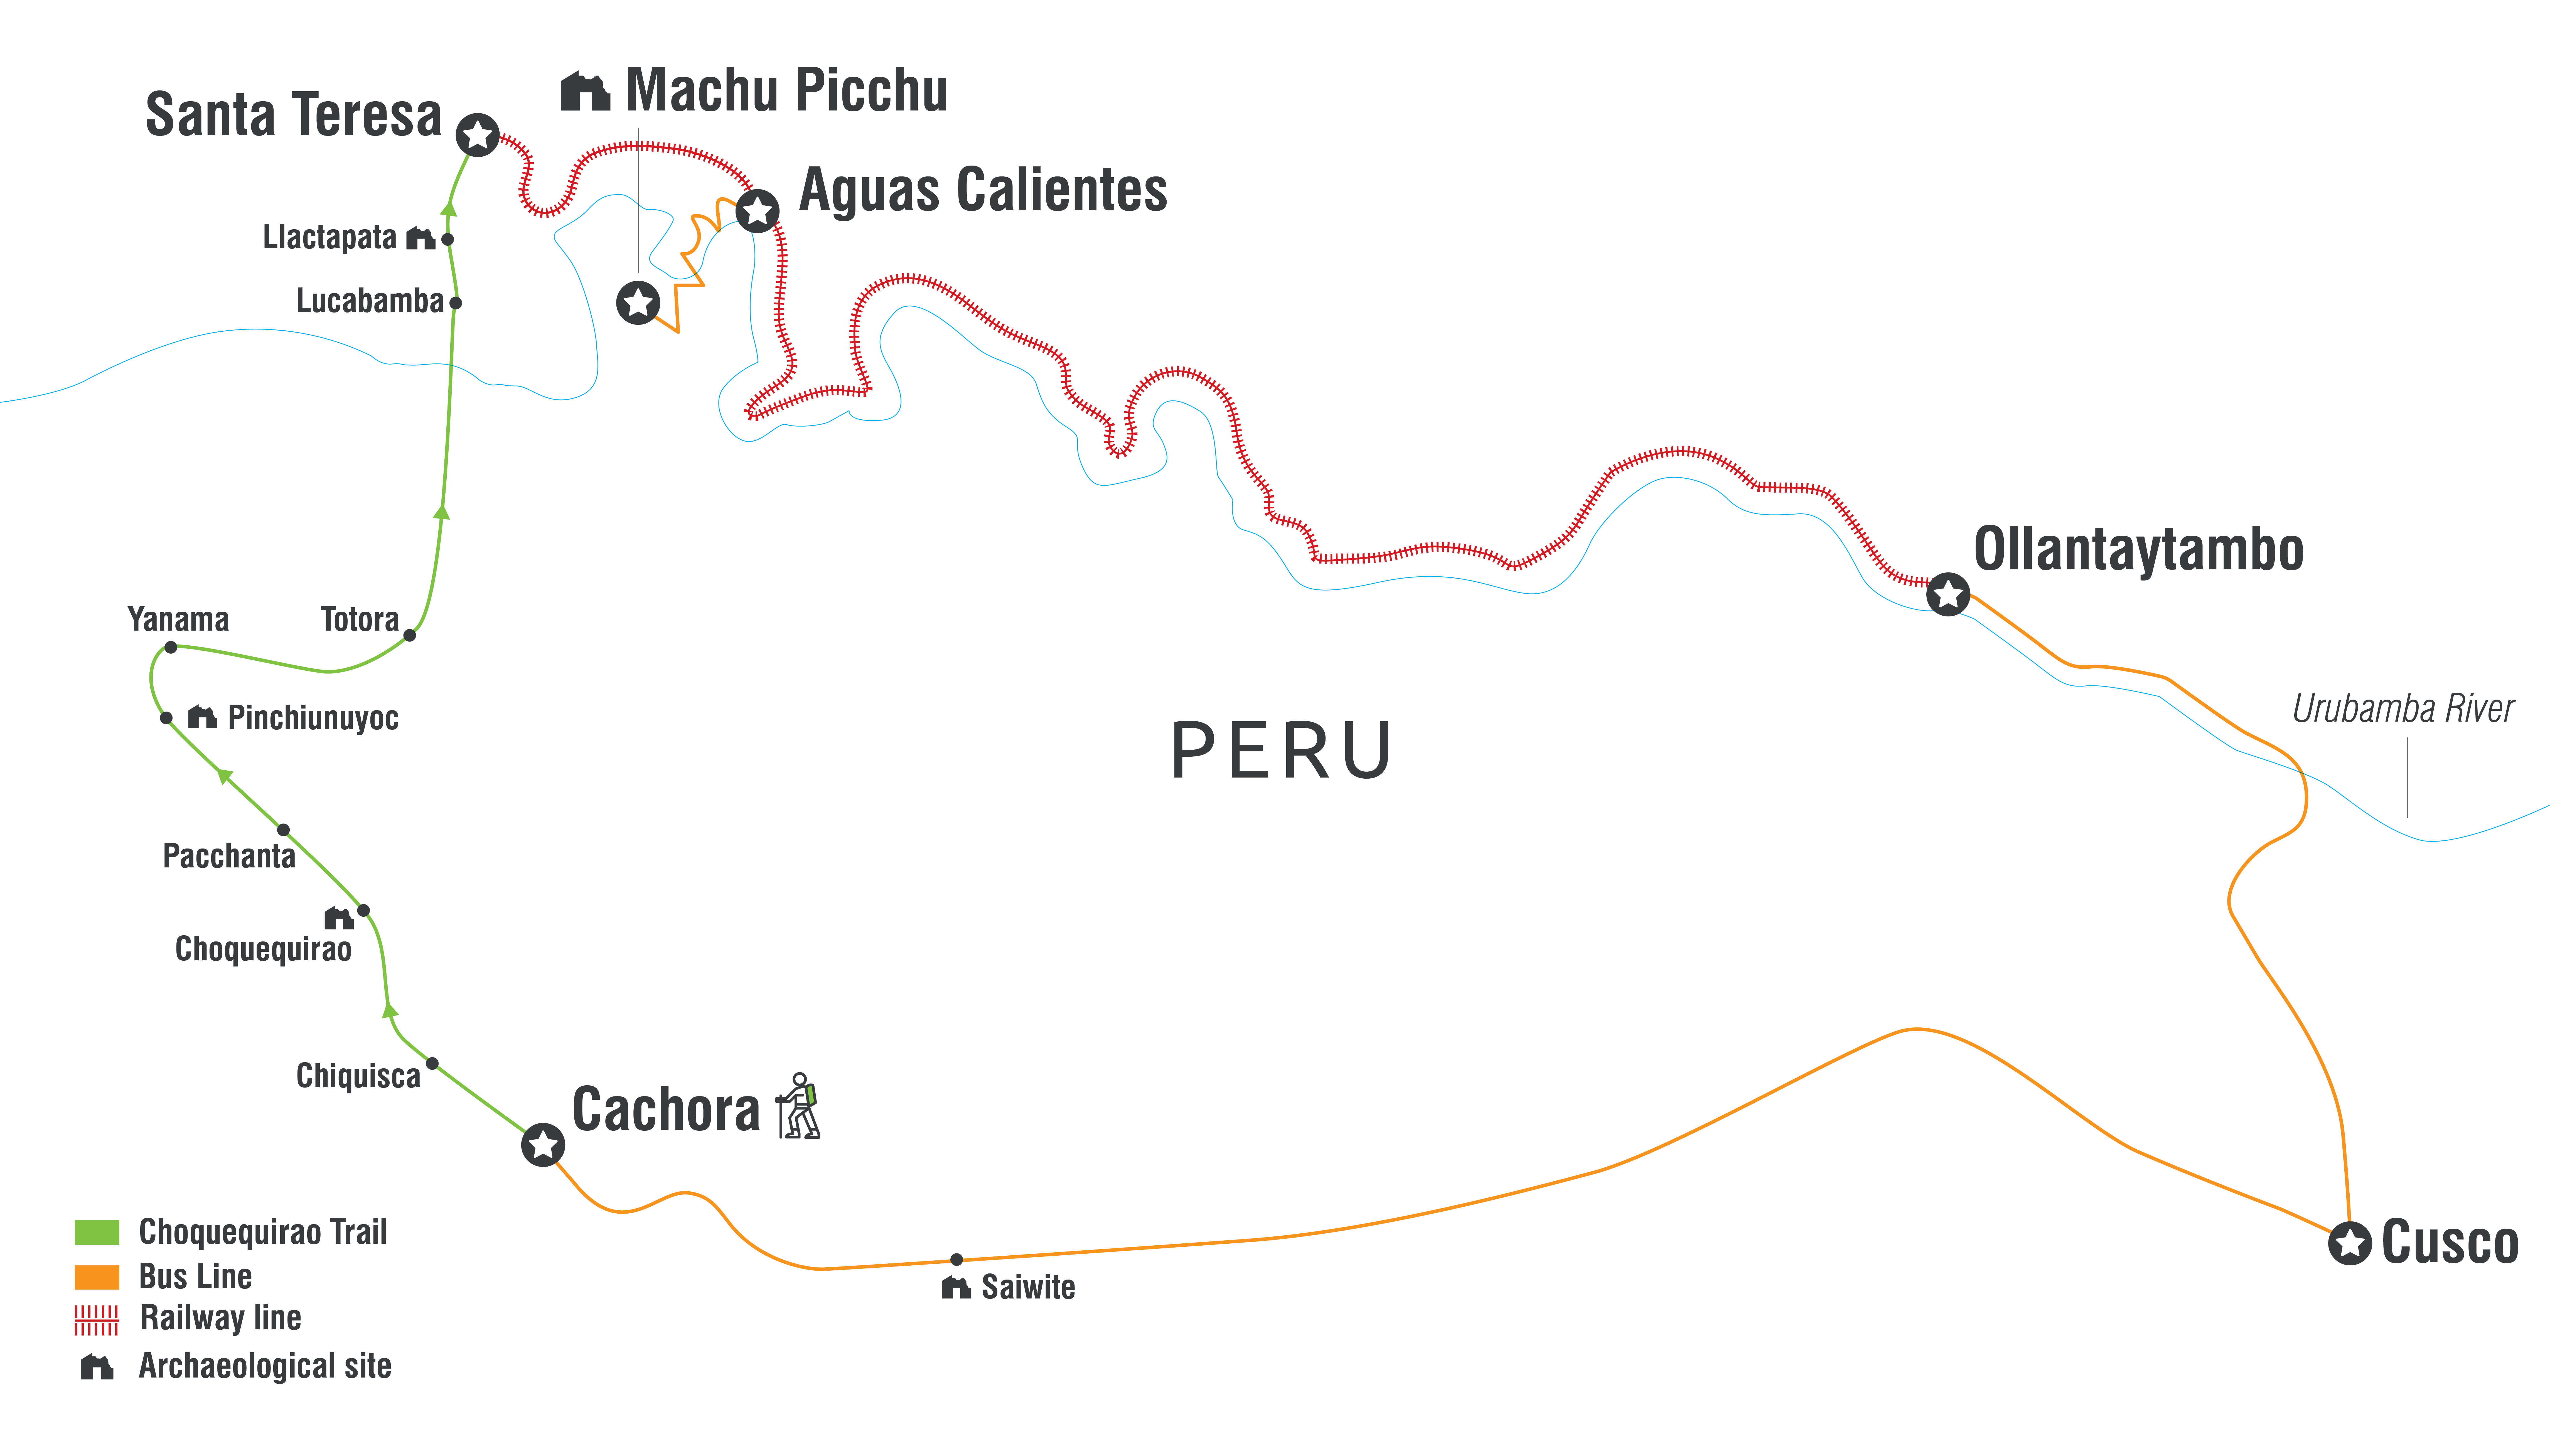 Choquequirao trail map including Machu Picchu